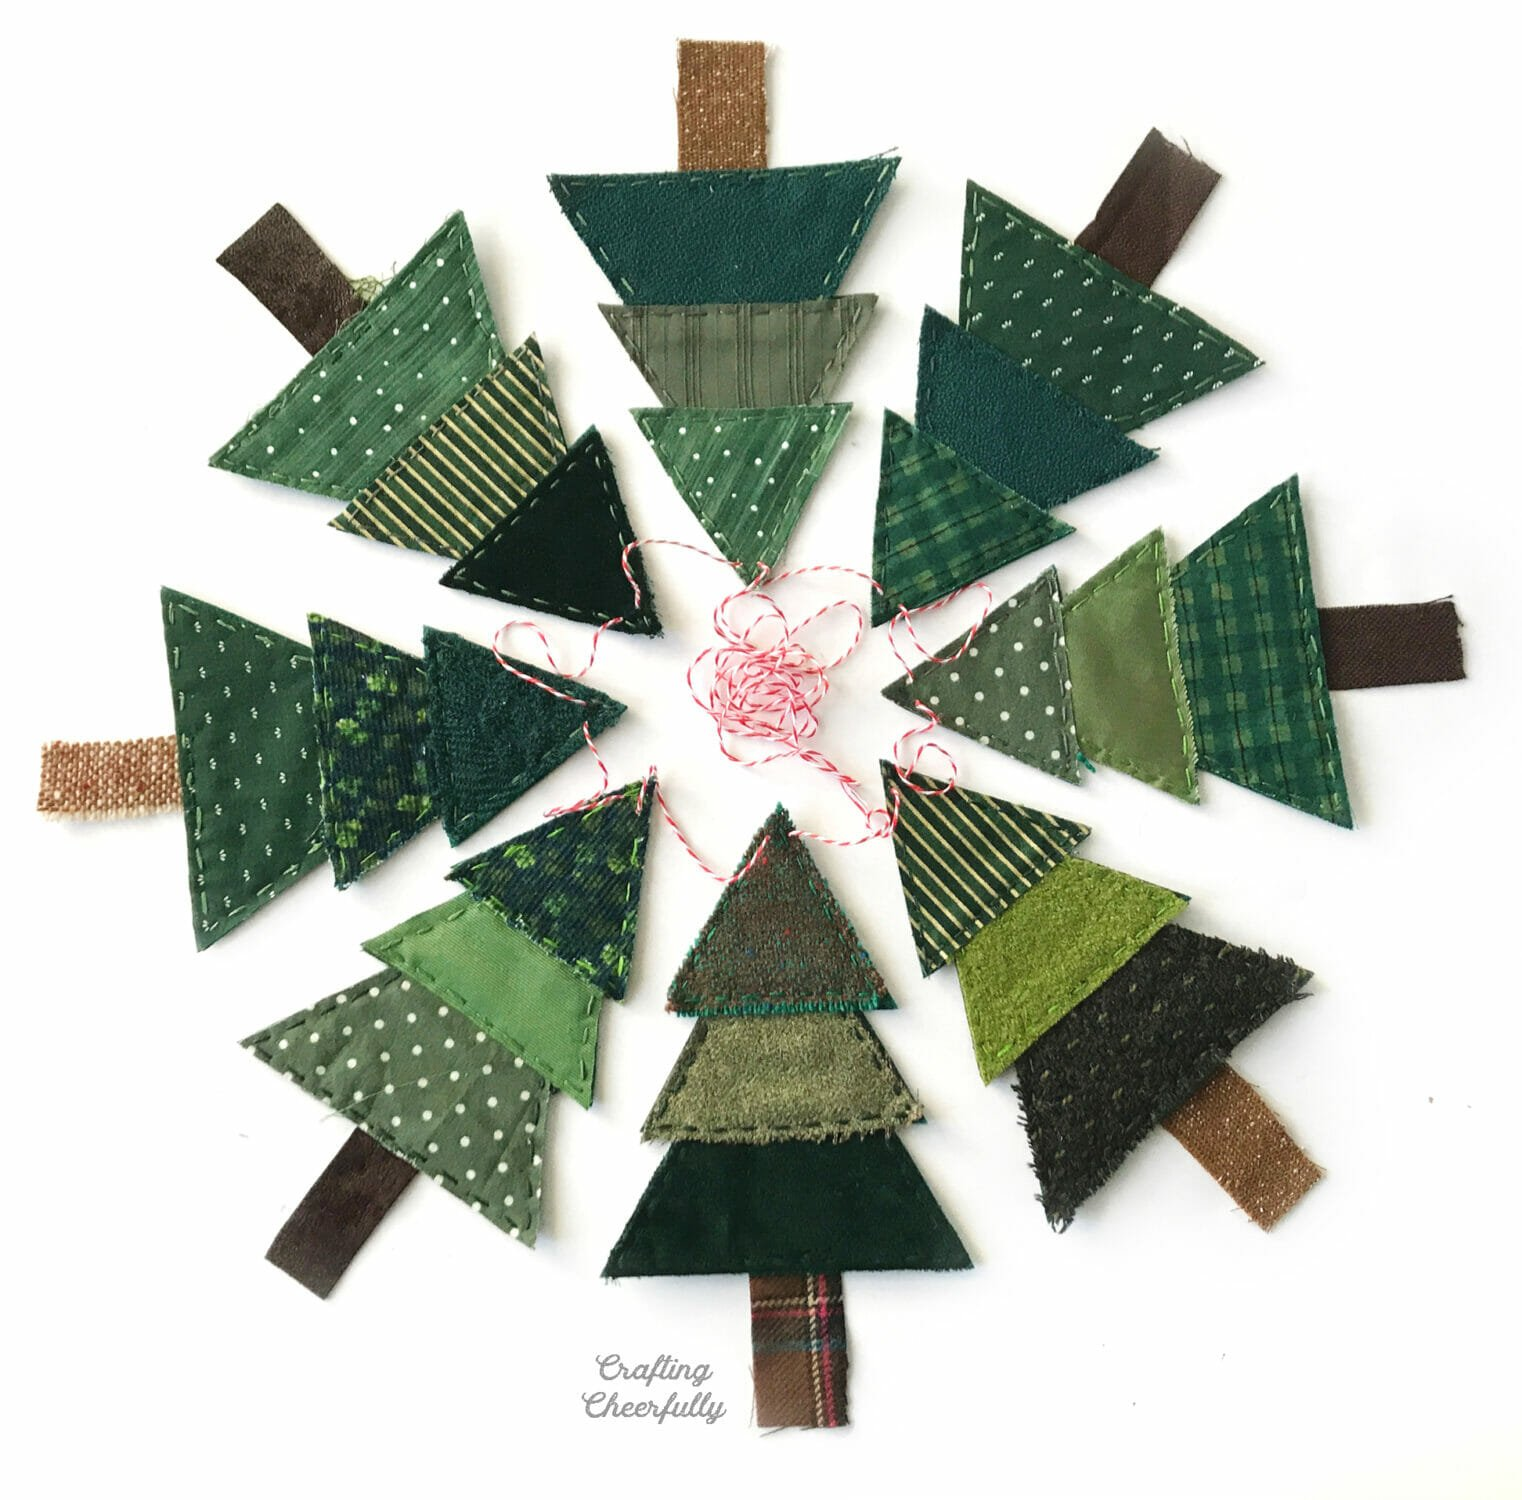 Christmas tree banner made with fabric scraps and felt is arranged in a circle with the trees pointing inward.